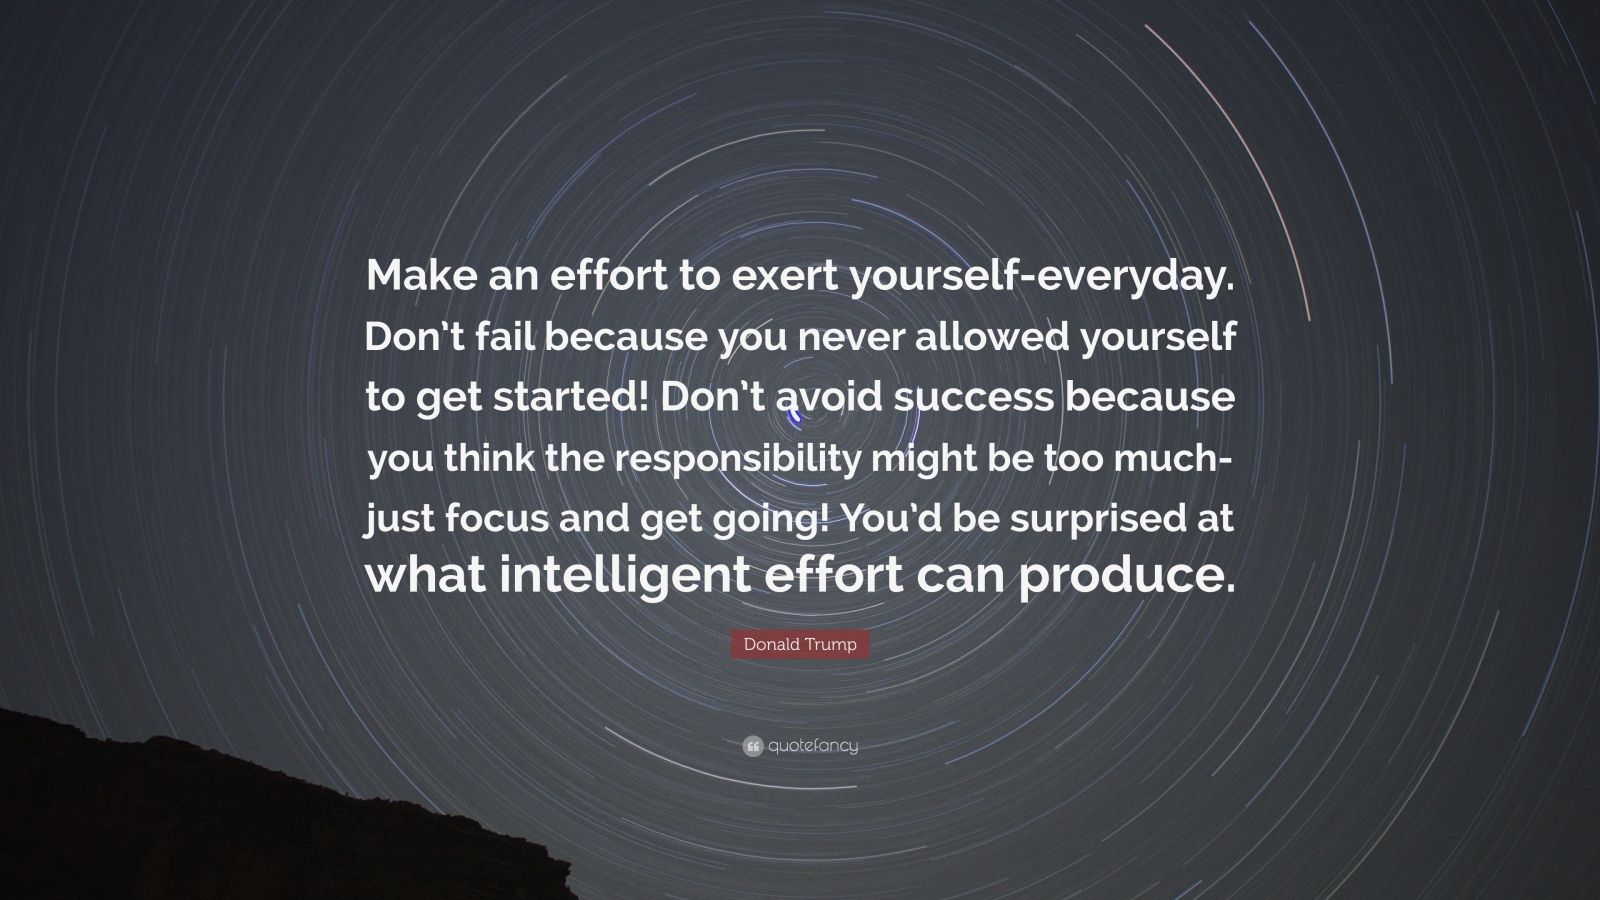 """Donald Trump Quote: """"Make an effort to exert yourself-everyday. Don't fail because you never allowed yourself to get started! Don't avoid success because you think the responsibility might be too much-just focus and get going! You'd be surprised at what intelligent effort can produce."""""""